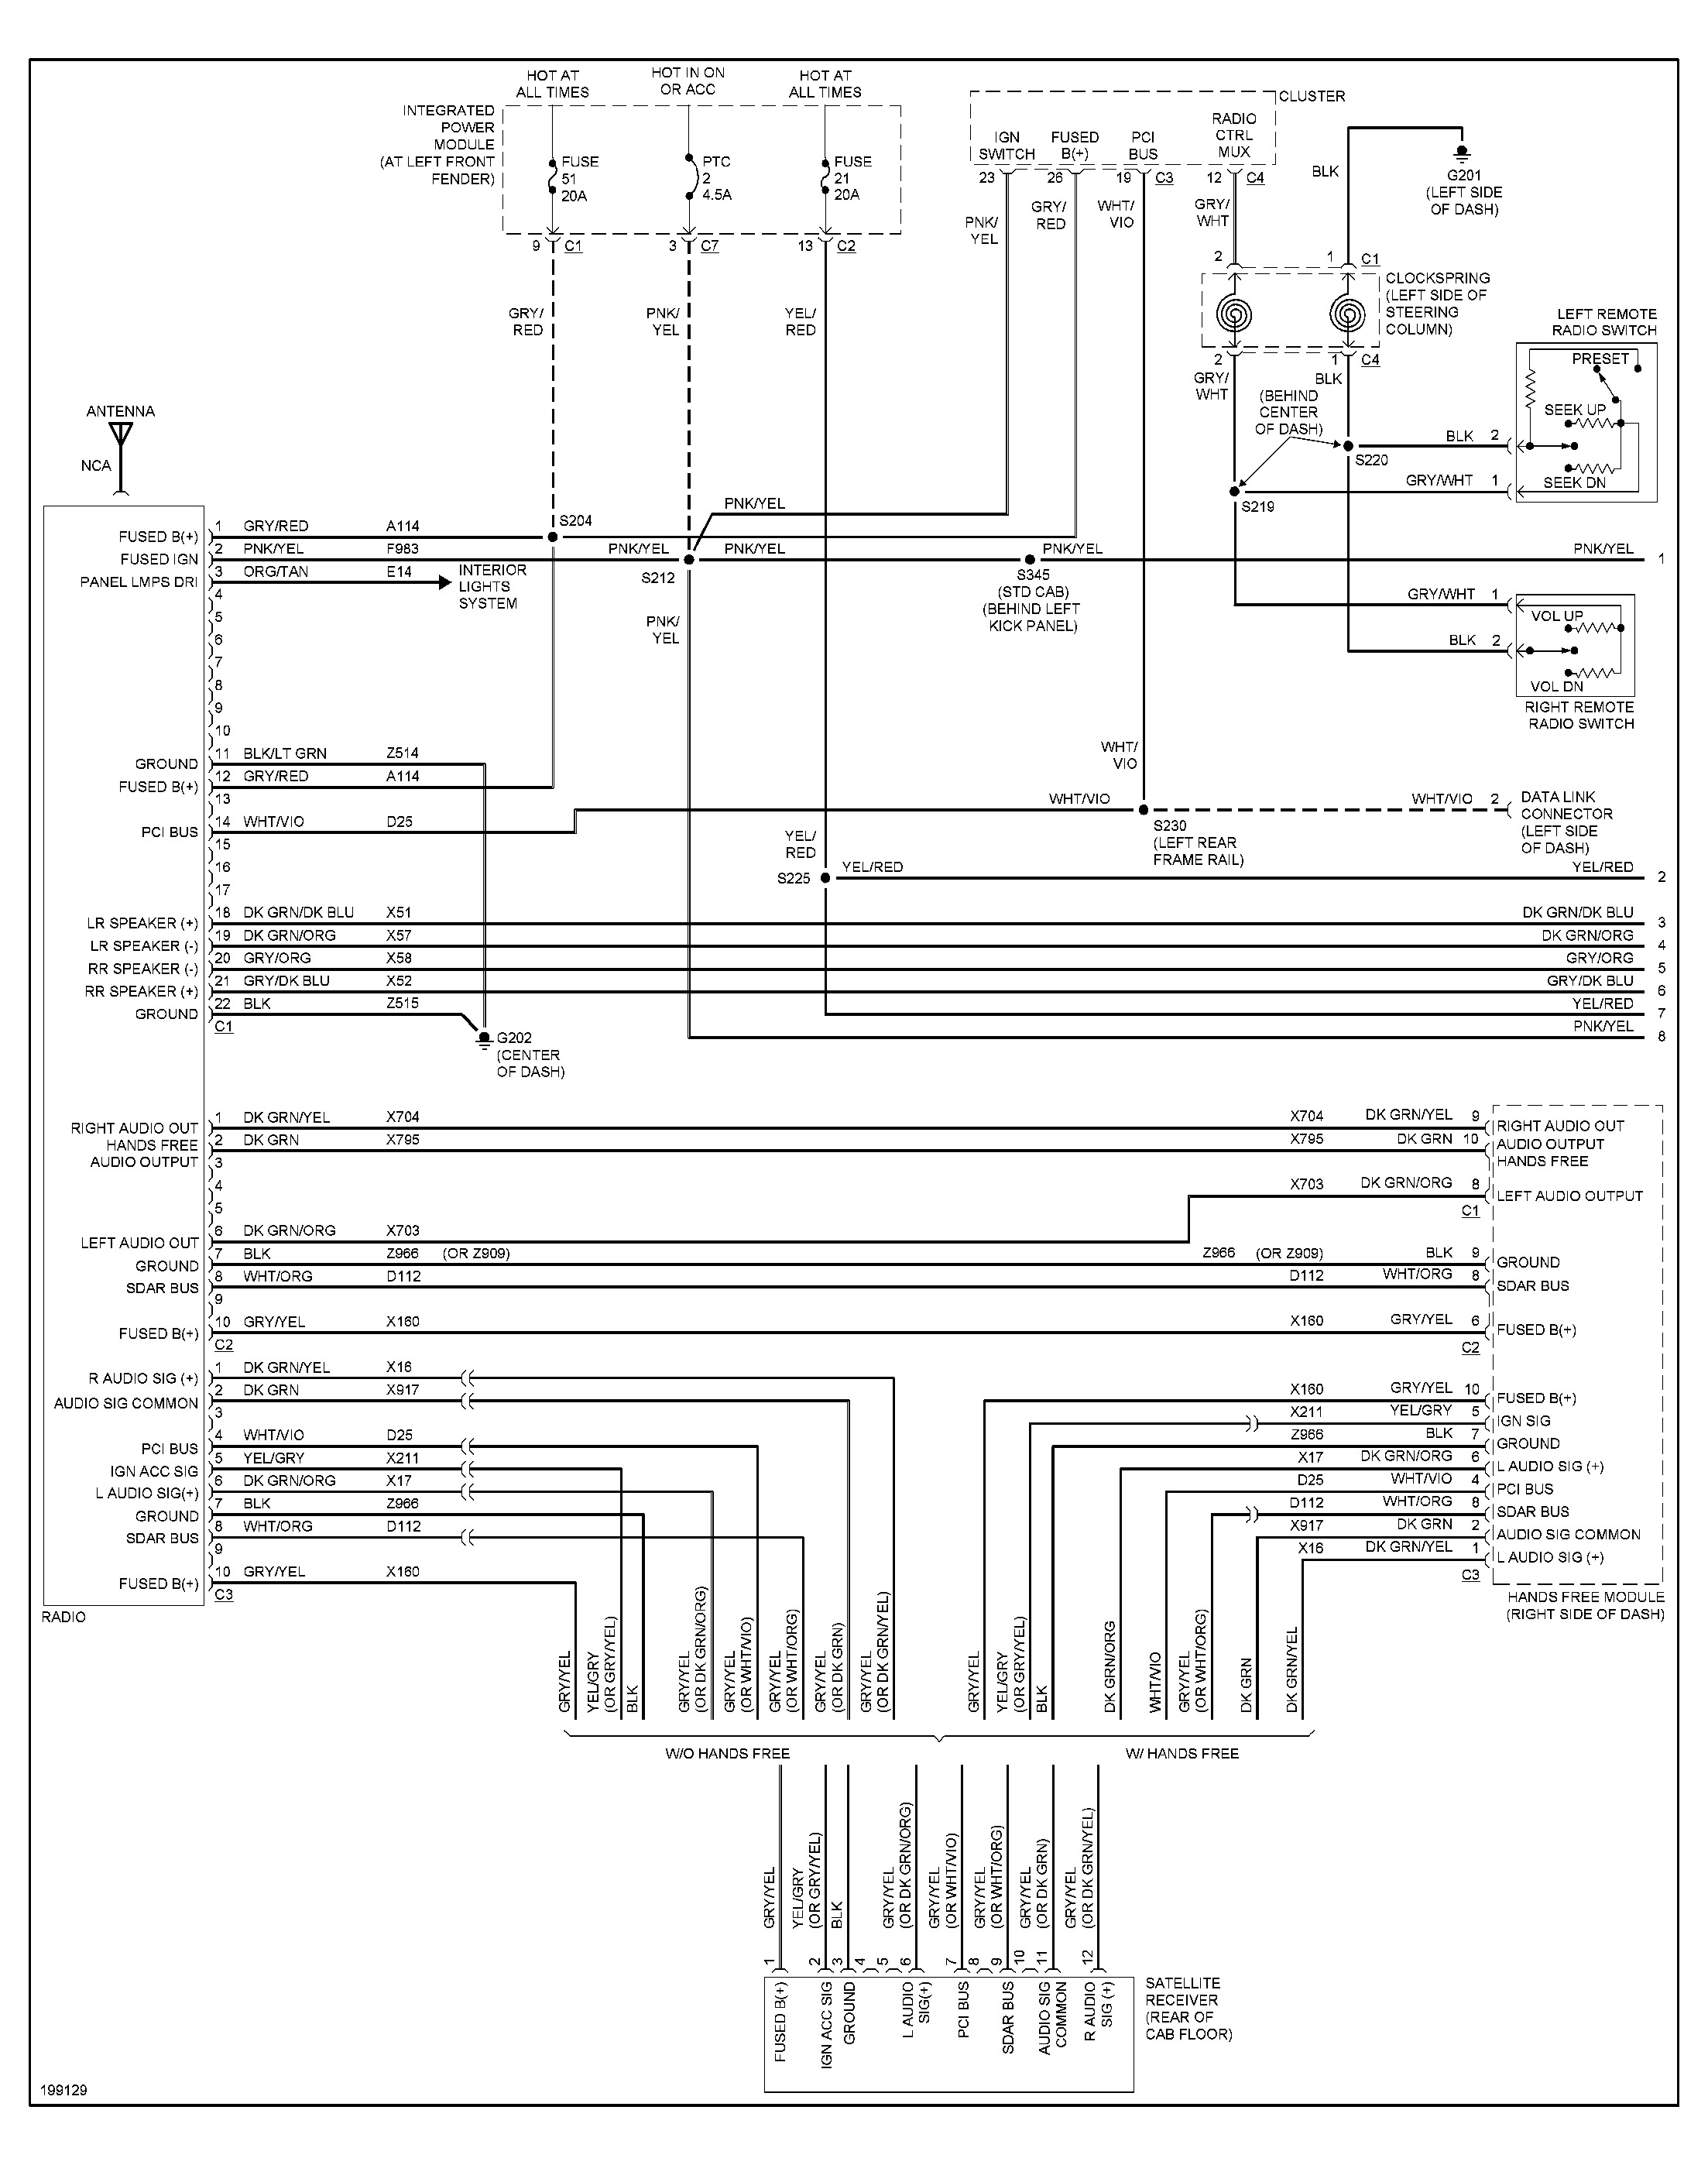 [DIAGRAM] 2014 Dodge Ram Radio Wiring Diagram FULL Version